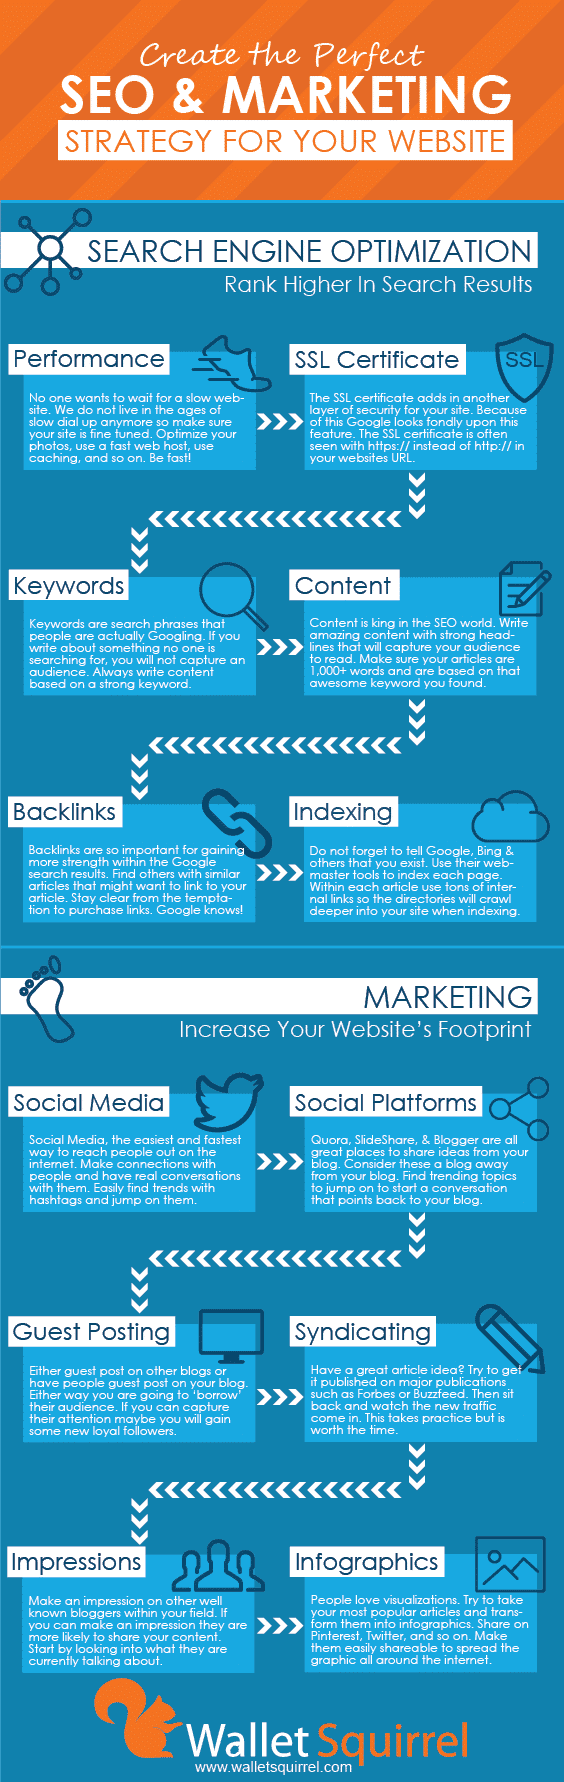 Wallet Squirrel SEO Marketing Infographic - Google Search